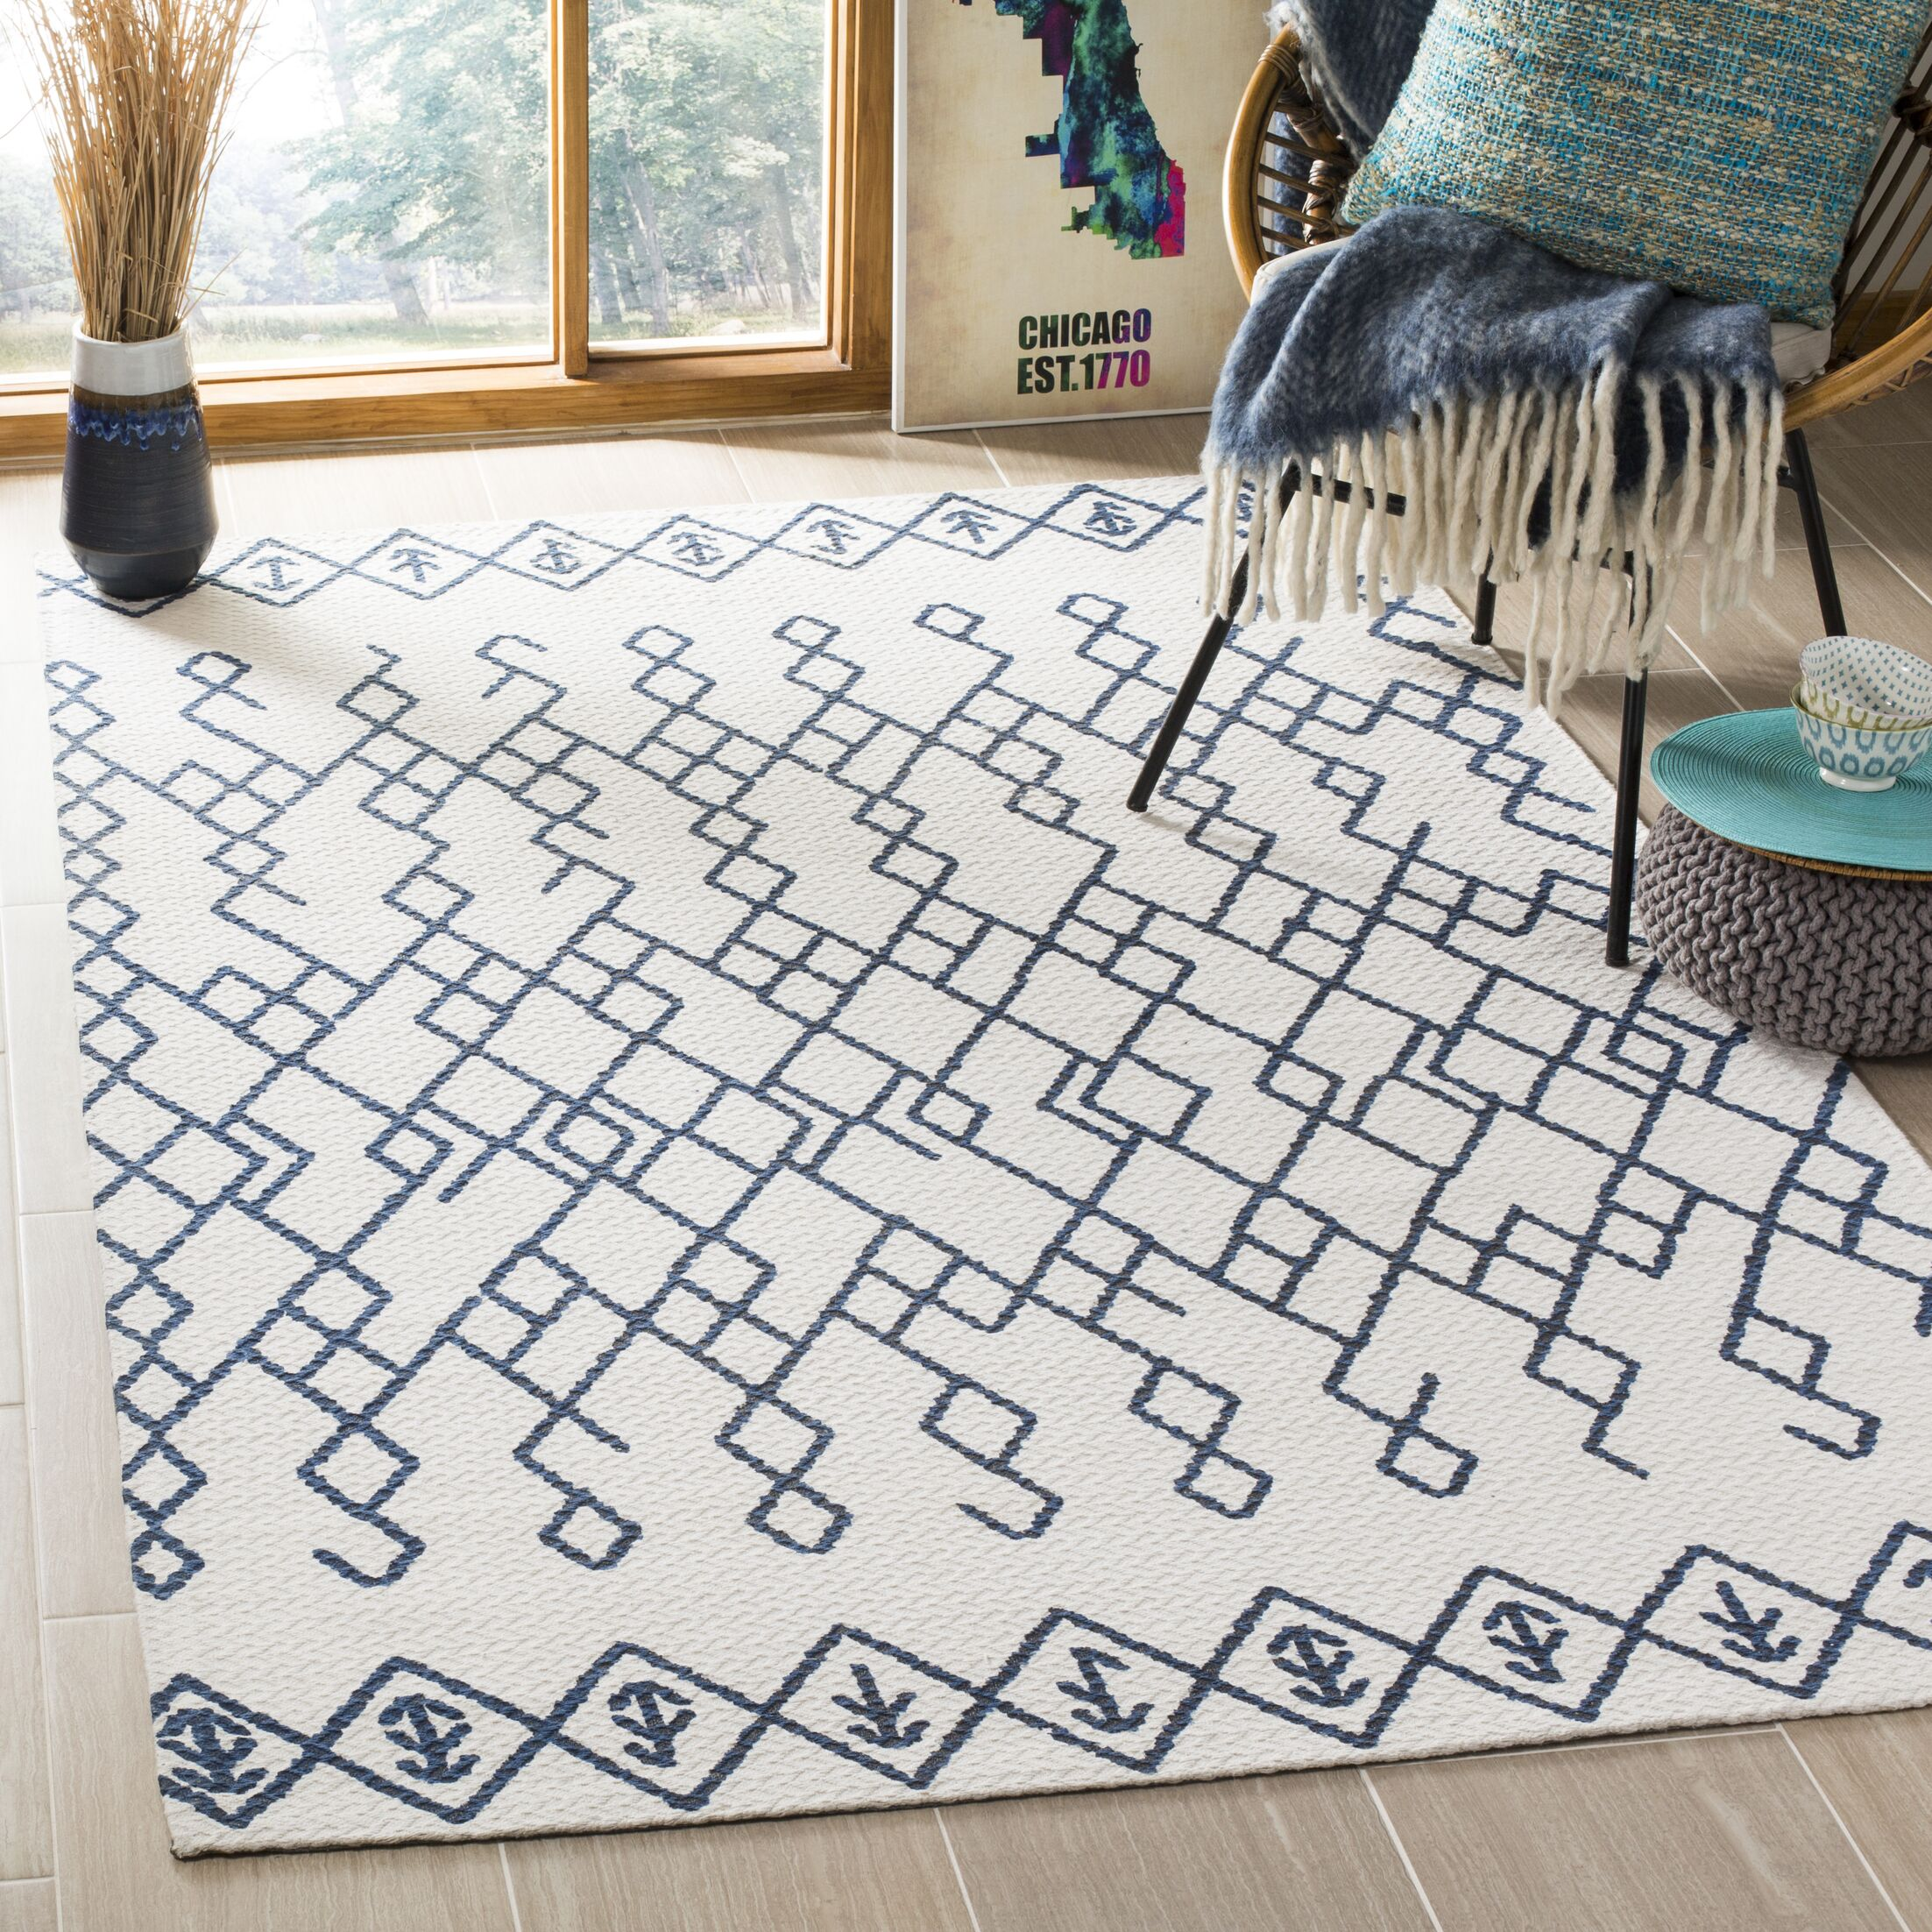 Owen Hand-Loomed Cotton Ivory Area Rug Rug Size: Rectangle 6' x 9'